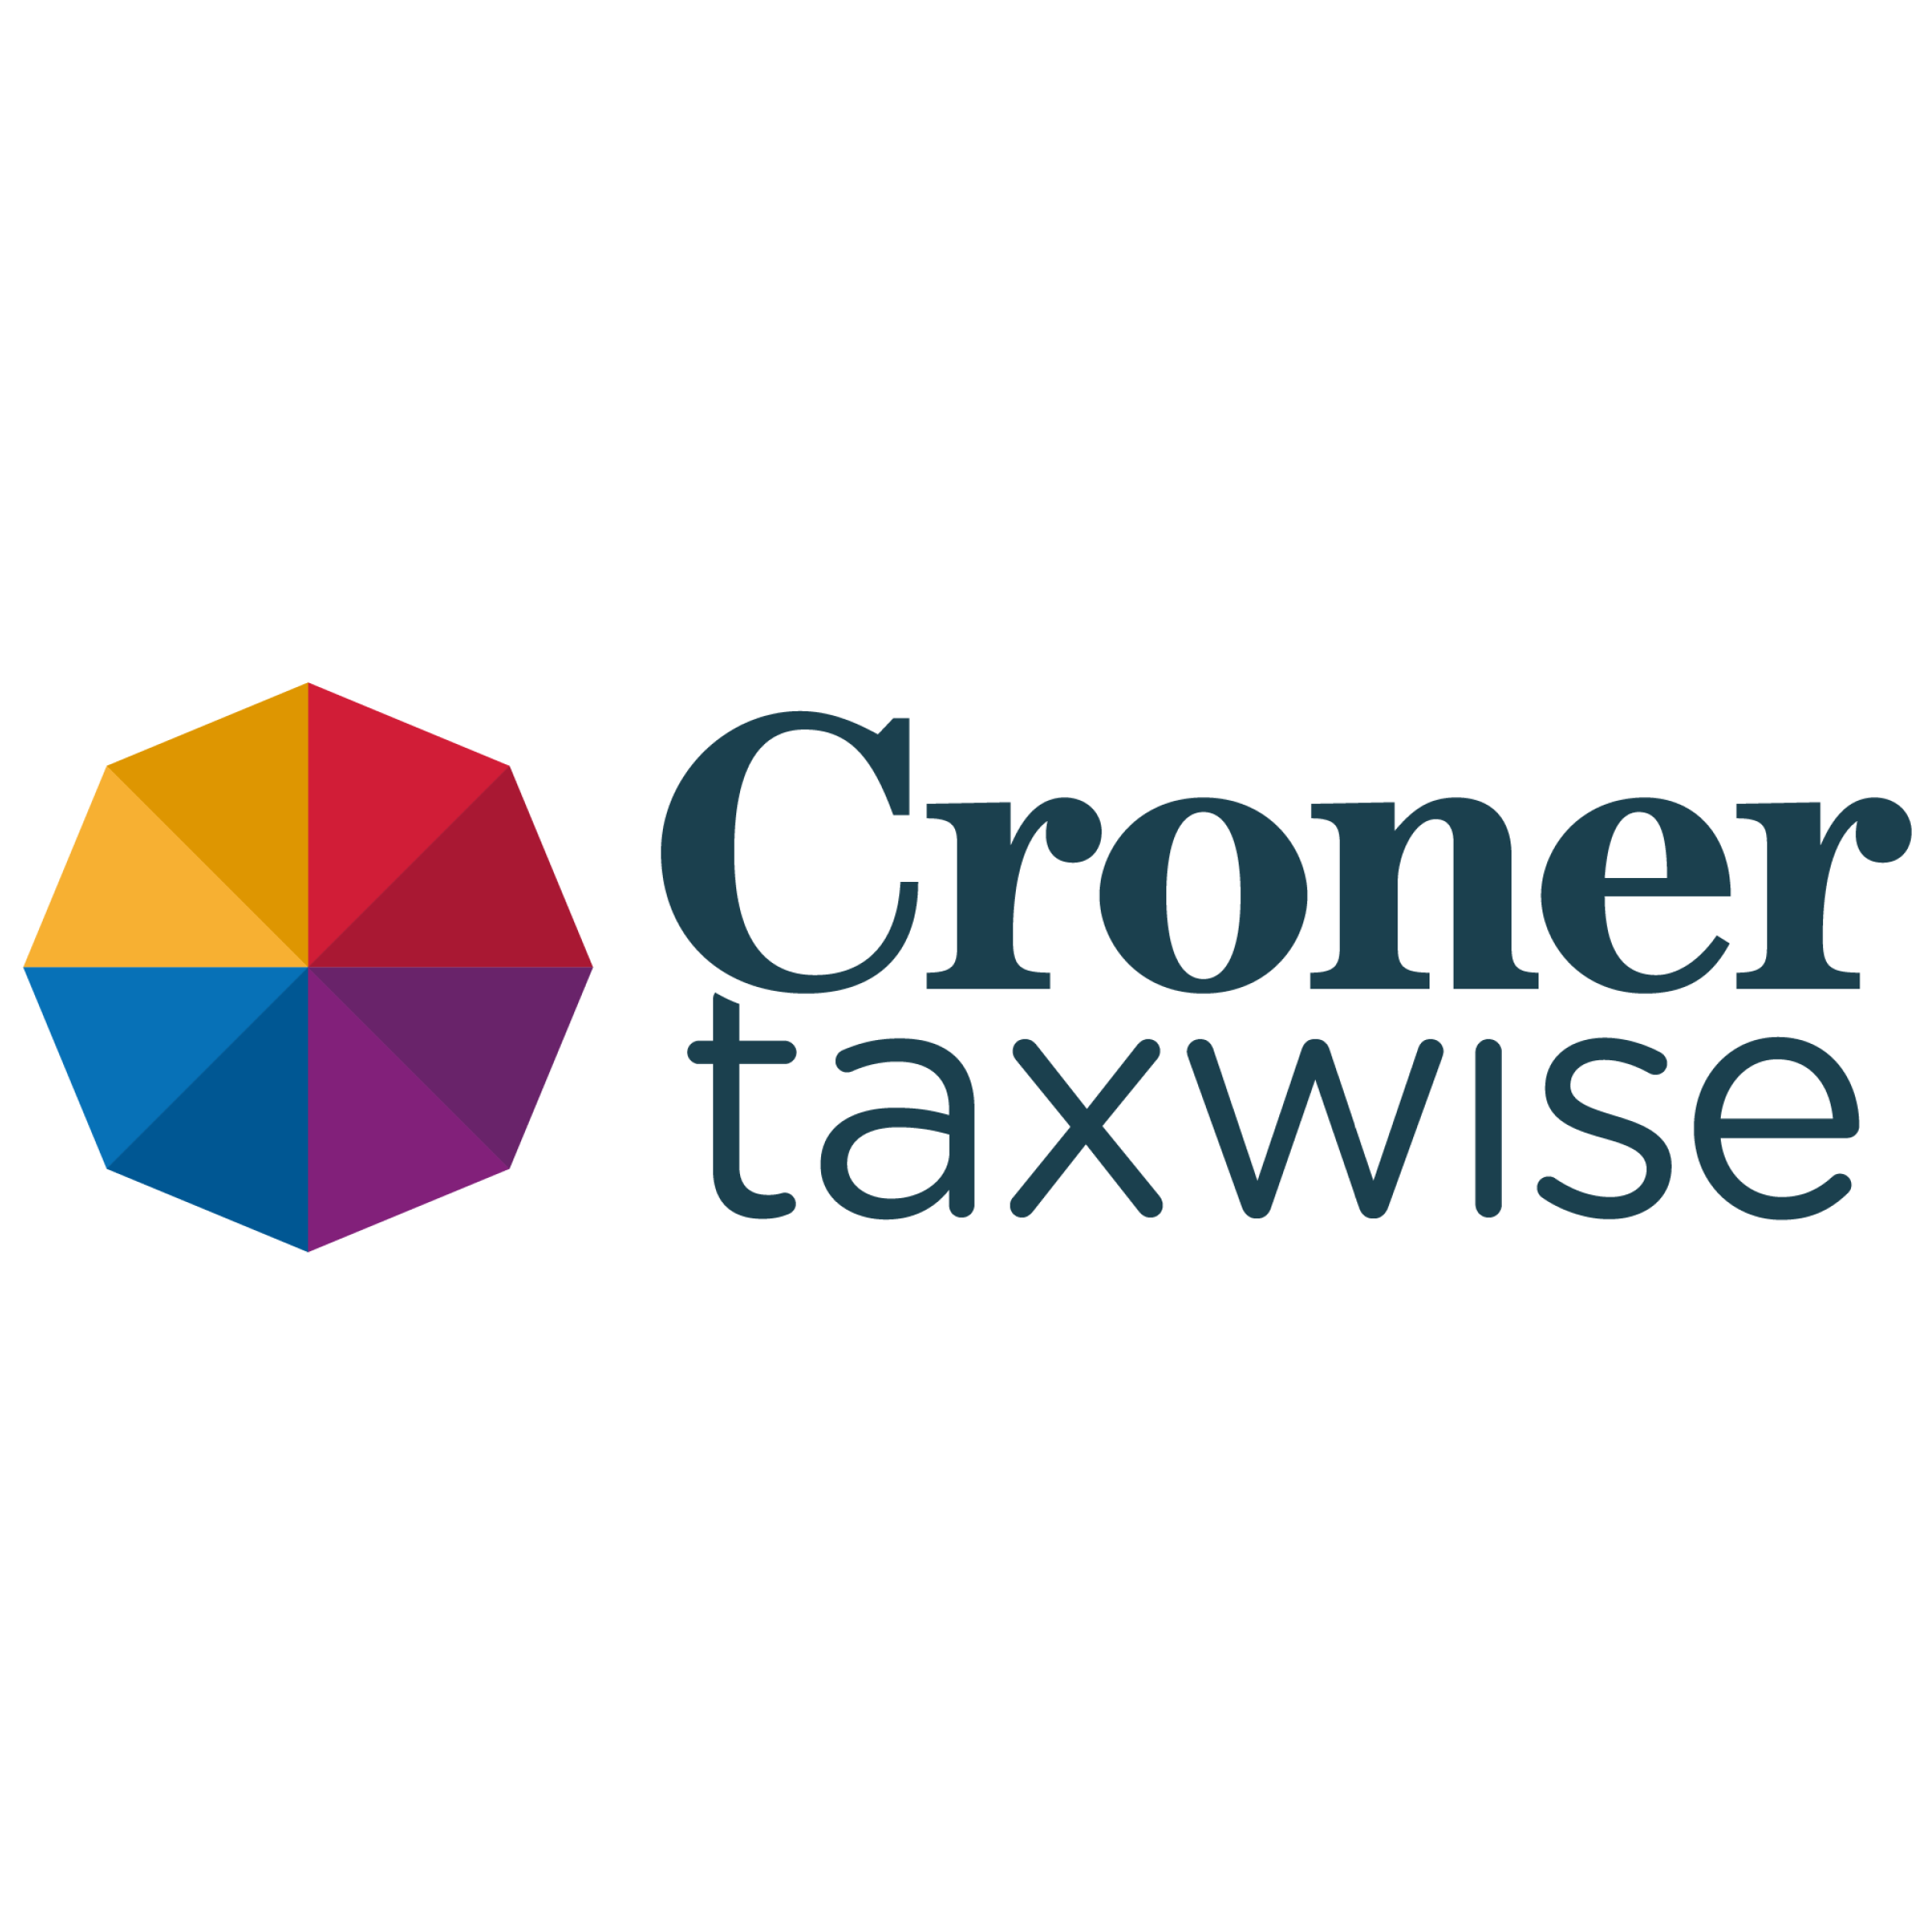 Croner Taxwise